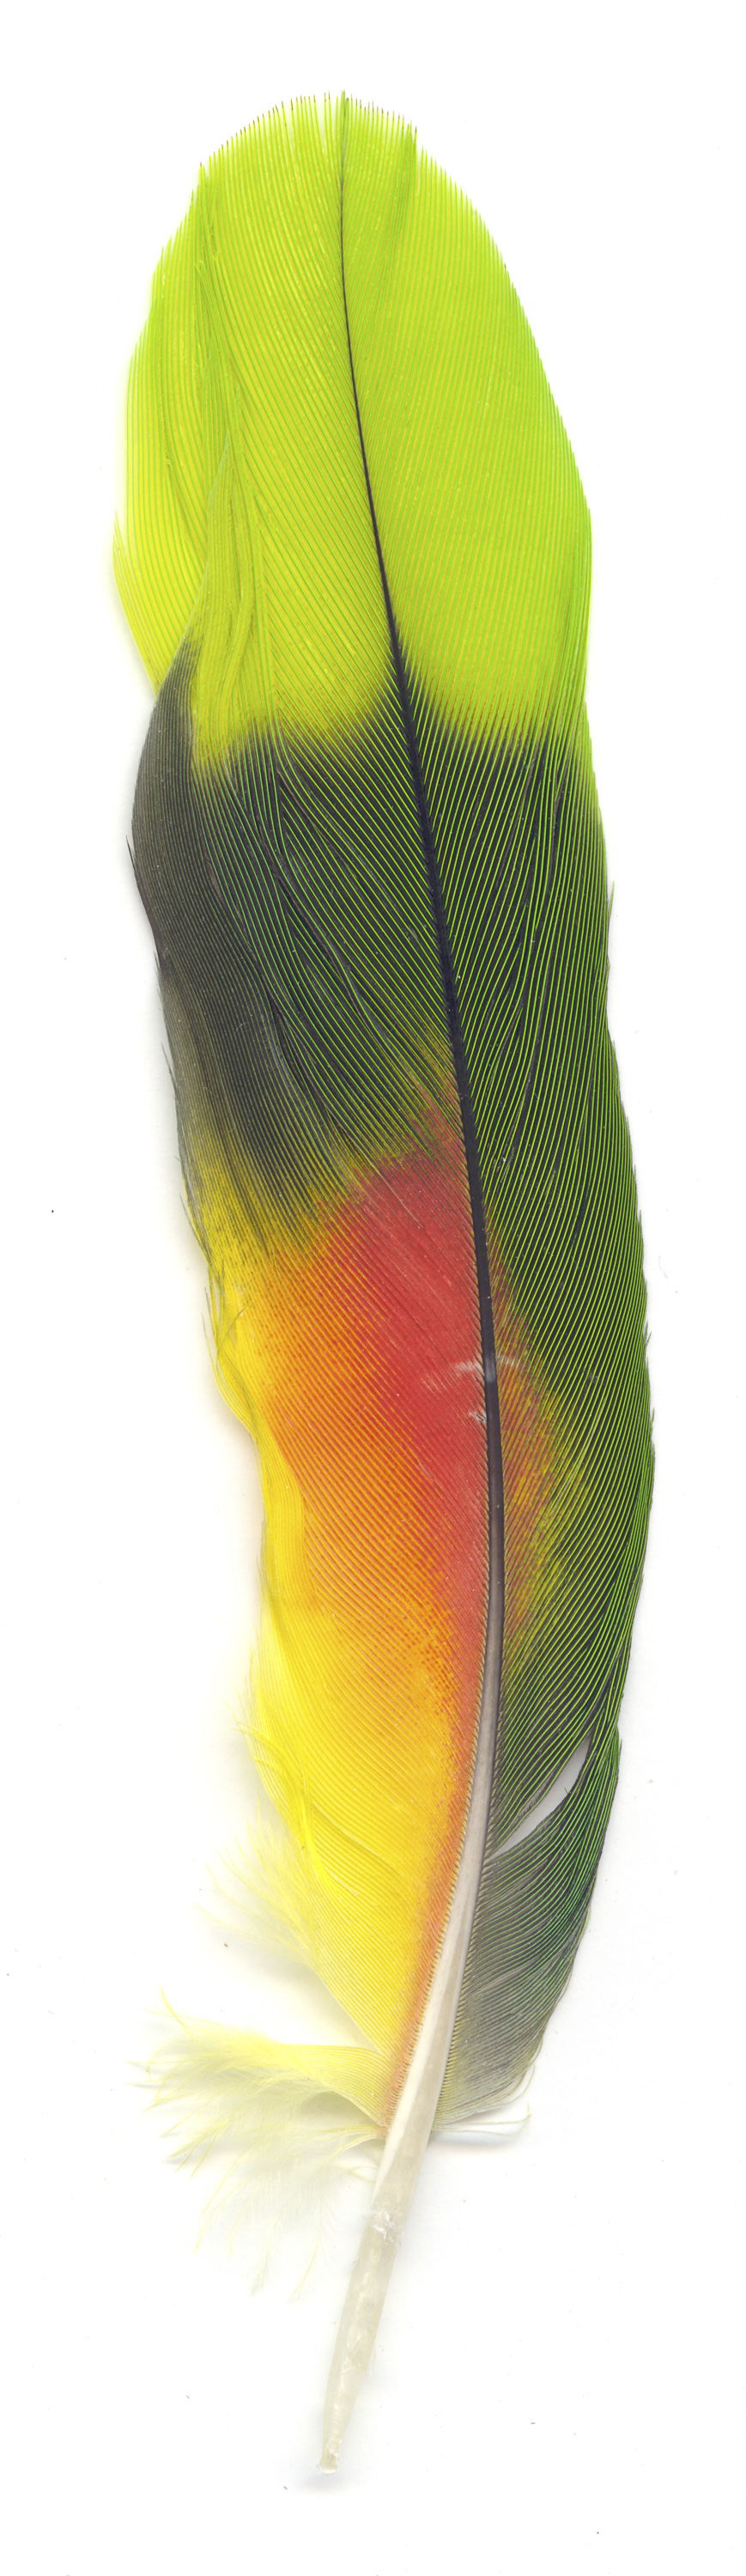 Collected Poems, Feathers, Parrot 3,   13x39 inches, Ink Jet print on Washi paper, 2006, Unique print, Private Collection